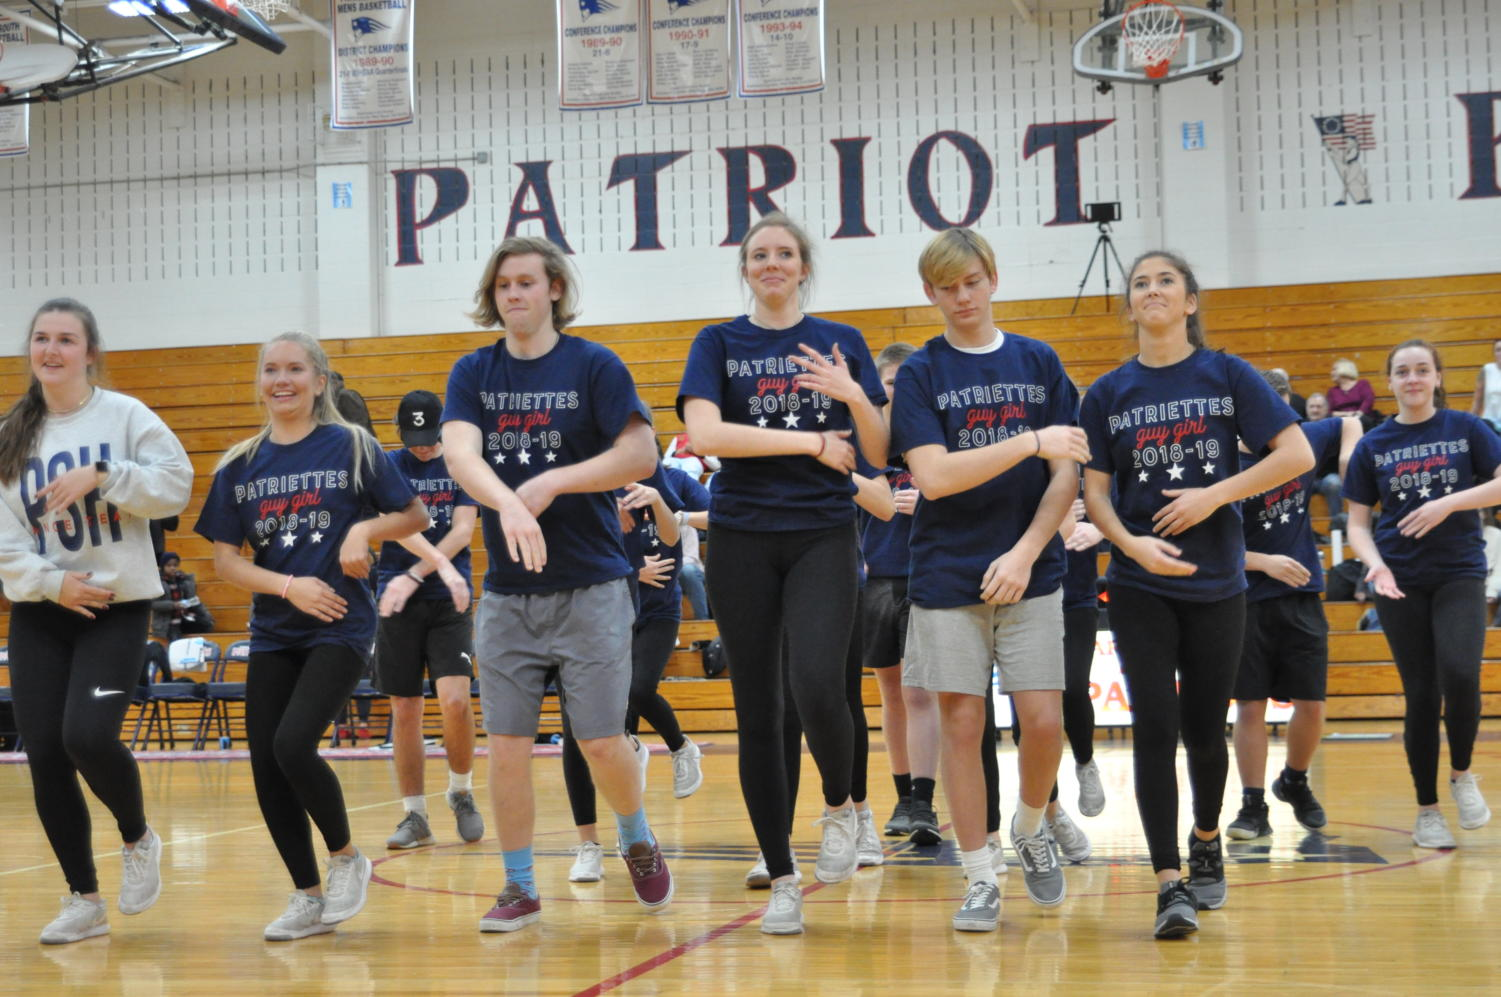 Members of the varsity dance team perform with boys for the Guy/Girl Dance.